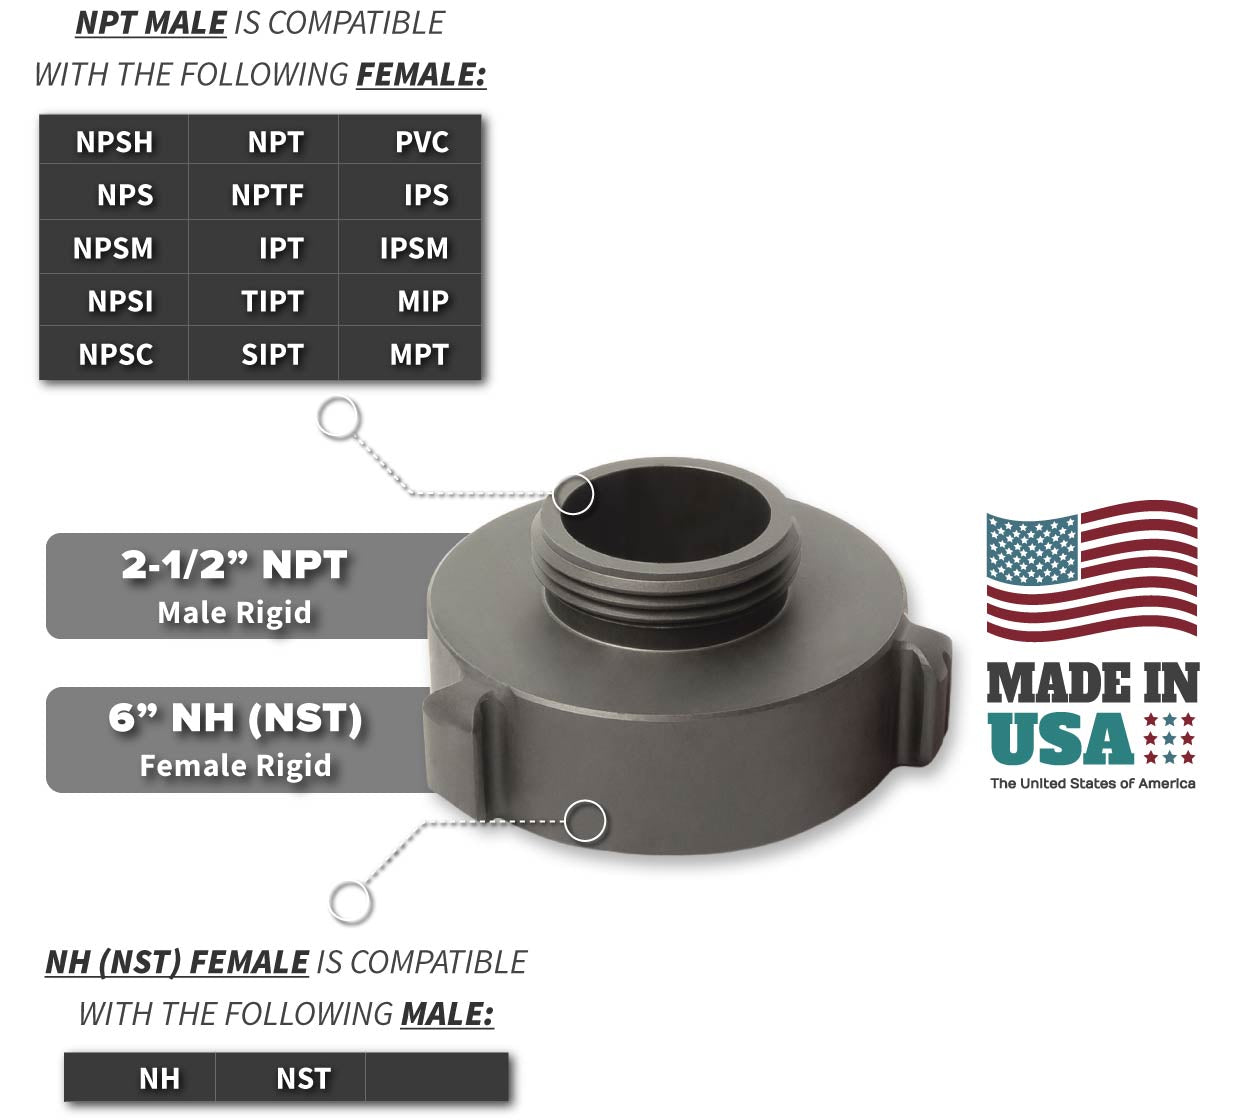 6 Inch NH-NST Female x 2.5 Inch NPT Male Compatibility Thread Chart